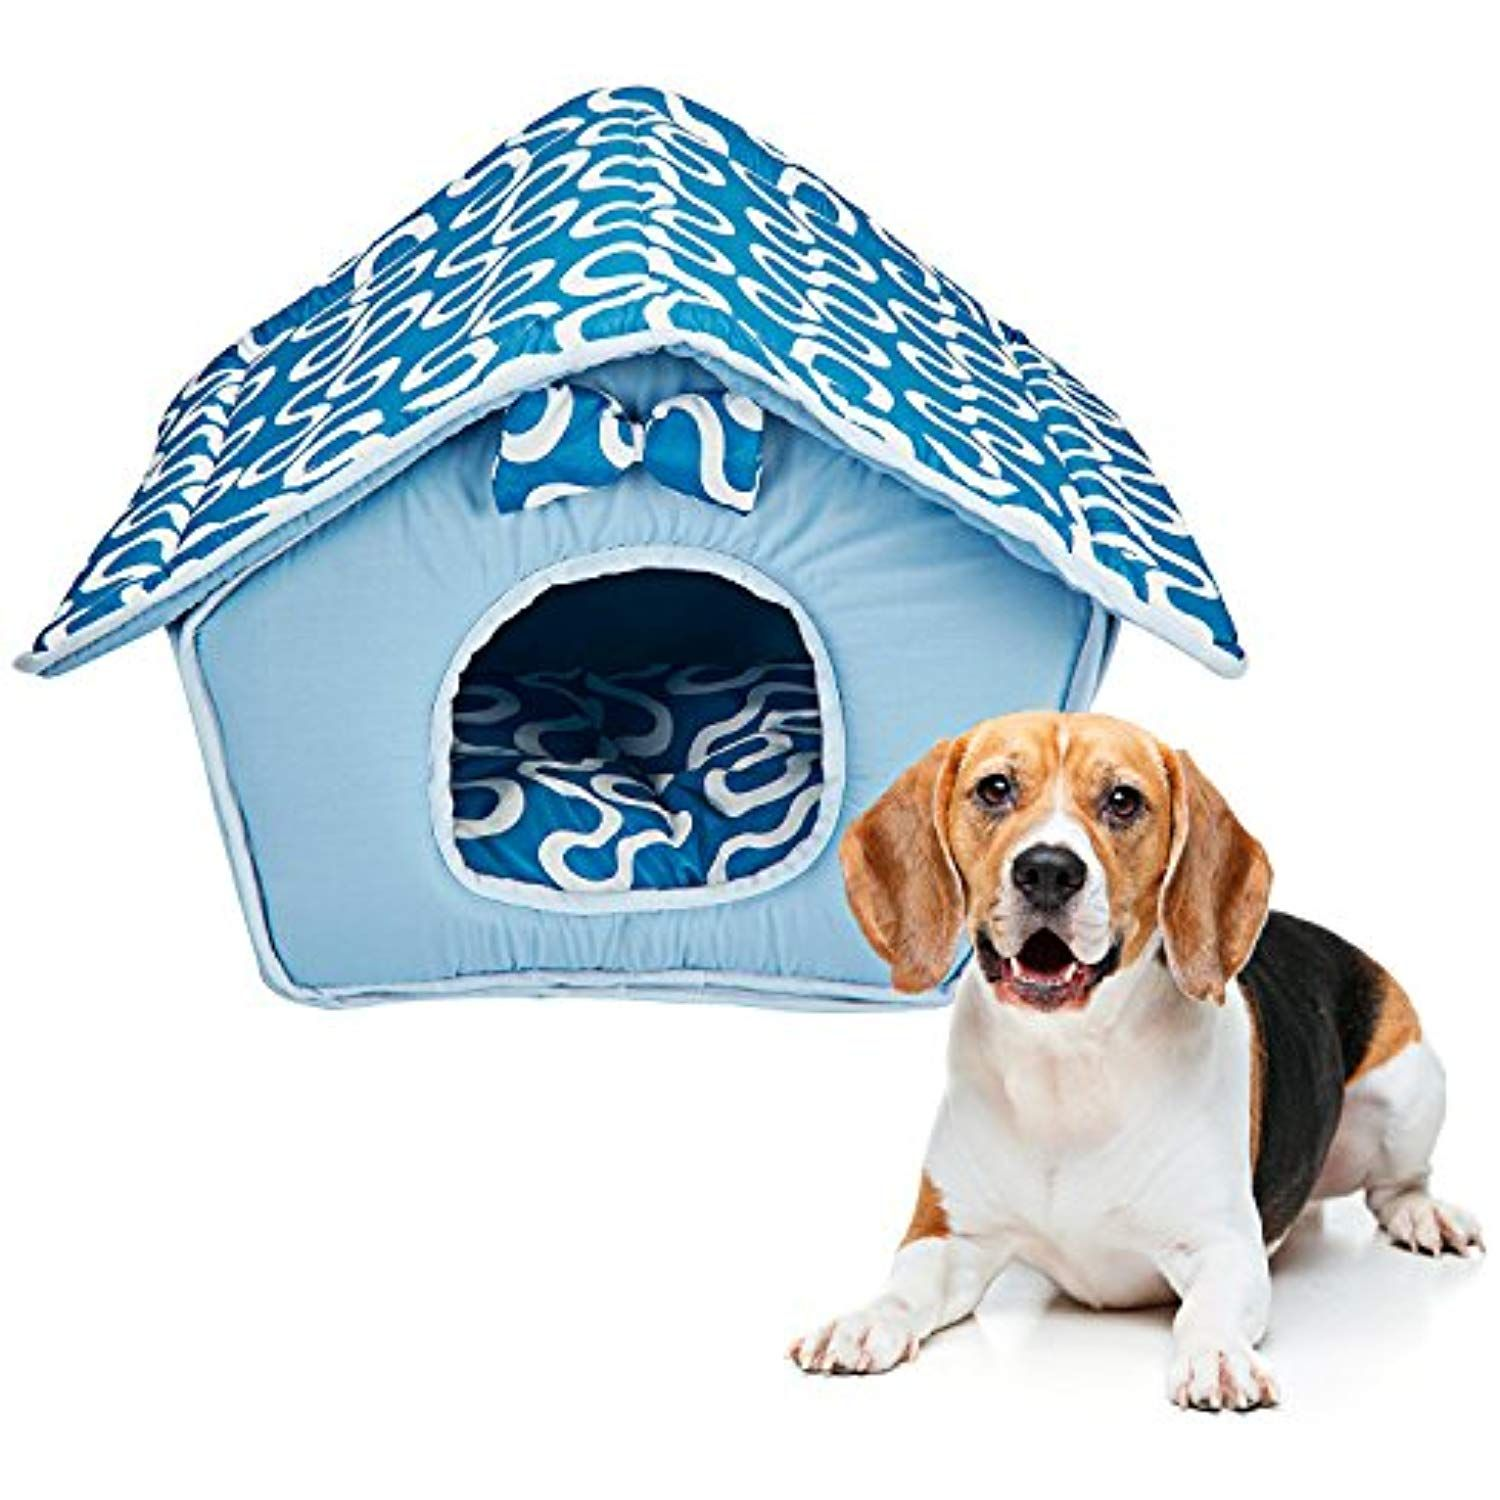 Animals Favorite Dog House Foaming House Want Additional Info Click On The Image This Is An Affiliate Link Dog Toys Toy Sets Dog House